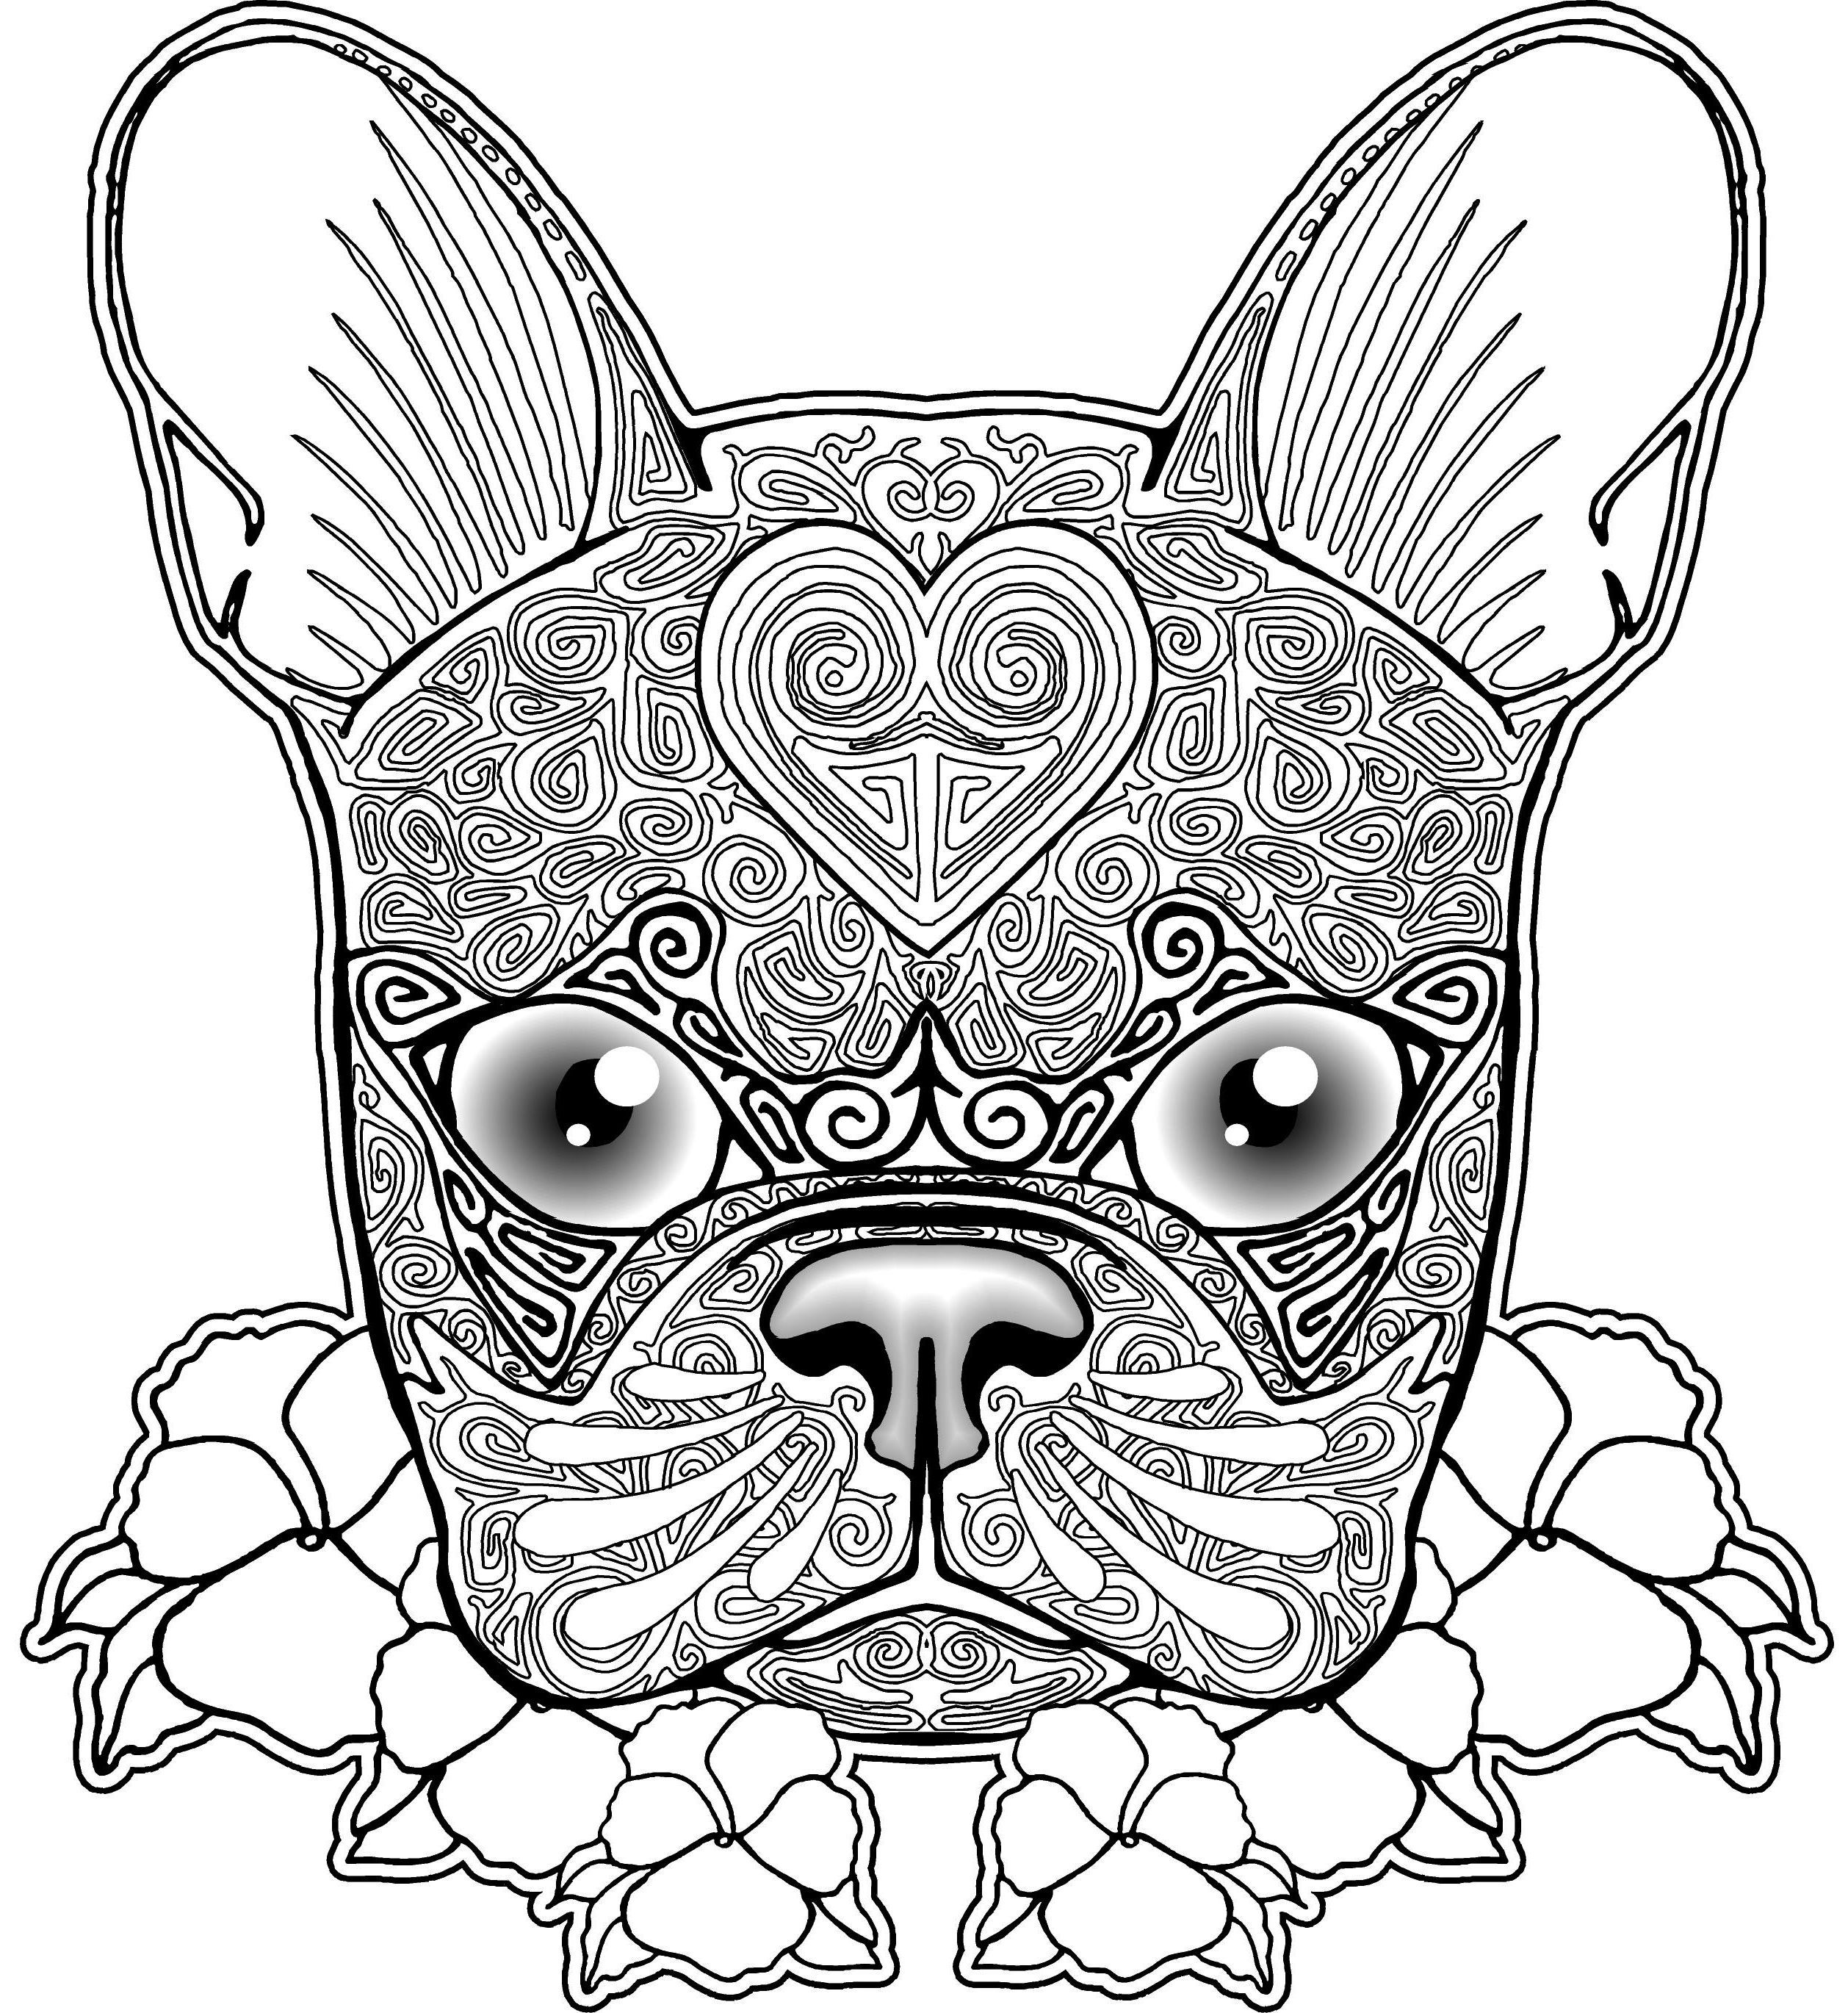 coloring pages of puppies hard - photo#32